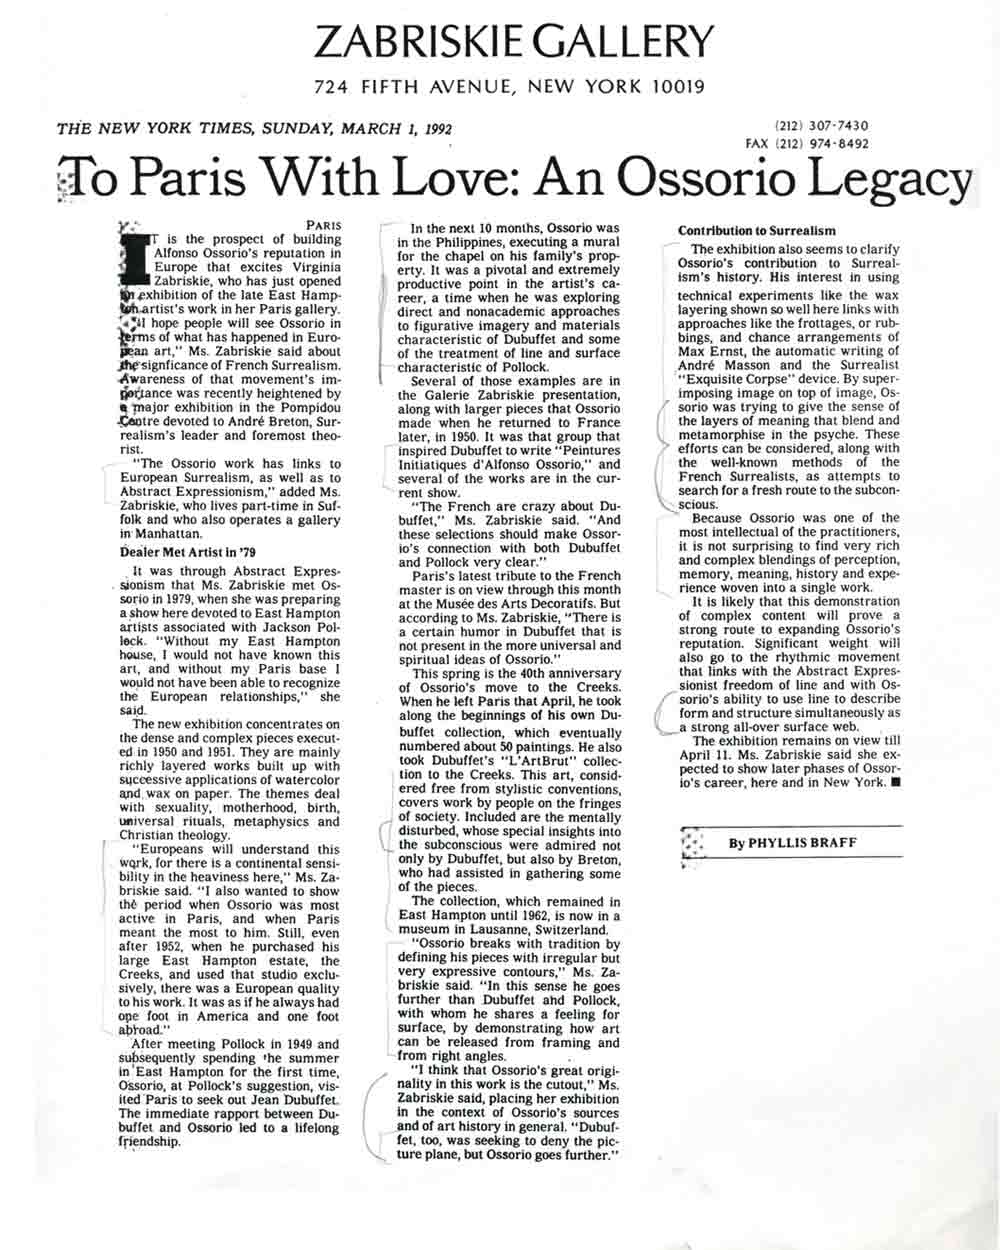 To Paris With Love: An Ossorio Legacy